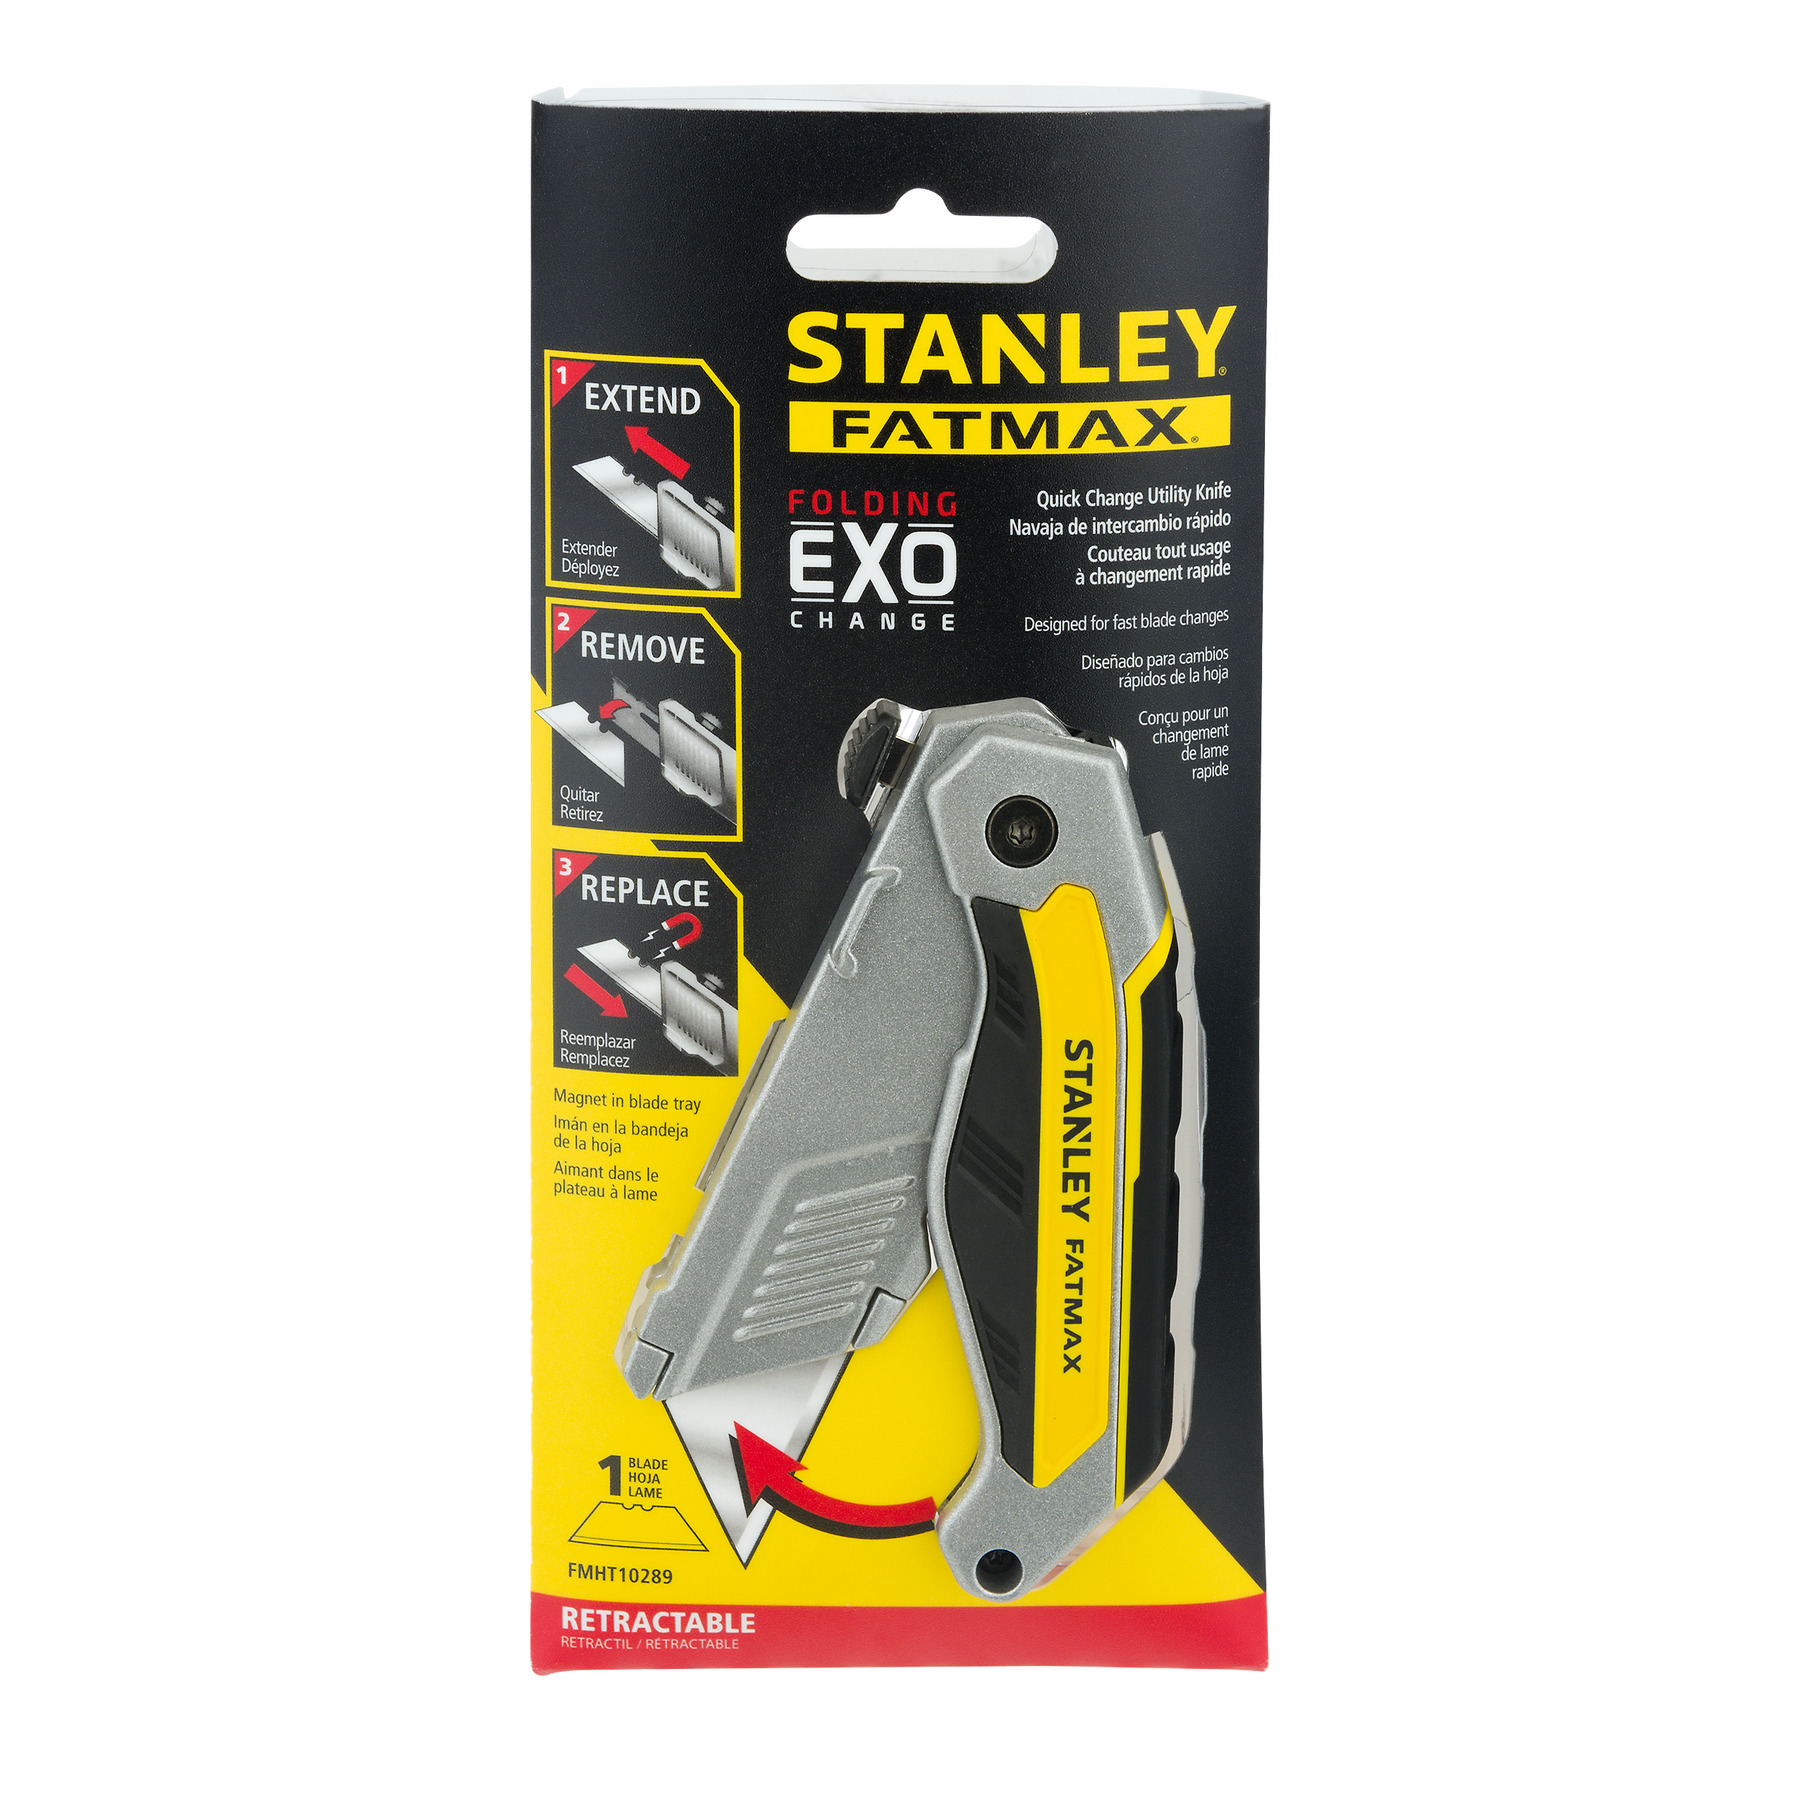 STANLEY FatMax FMHT10289 Quick Change Utility Knife